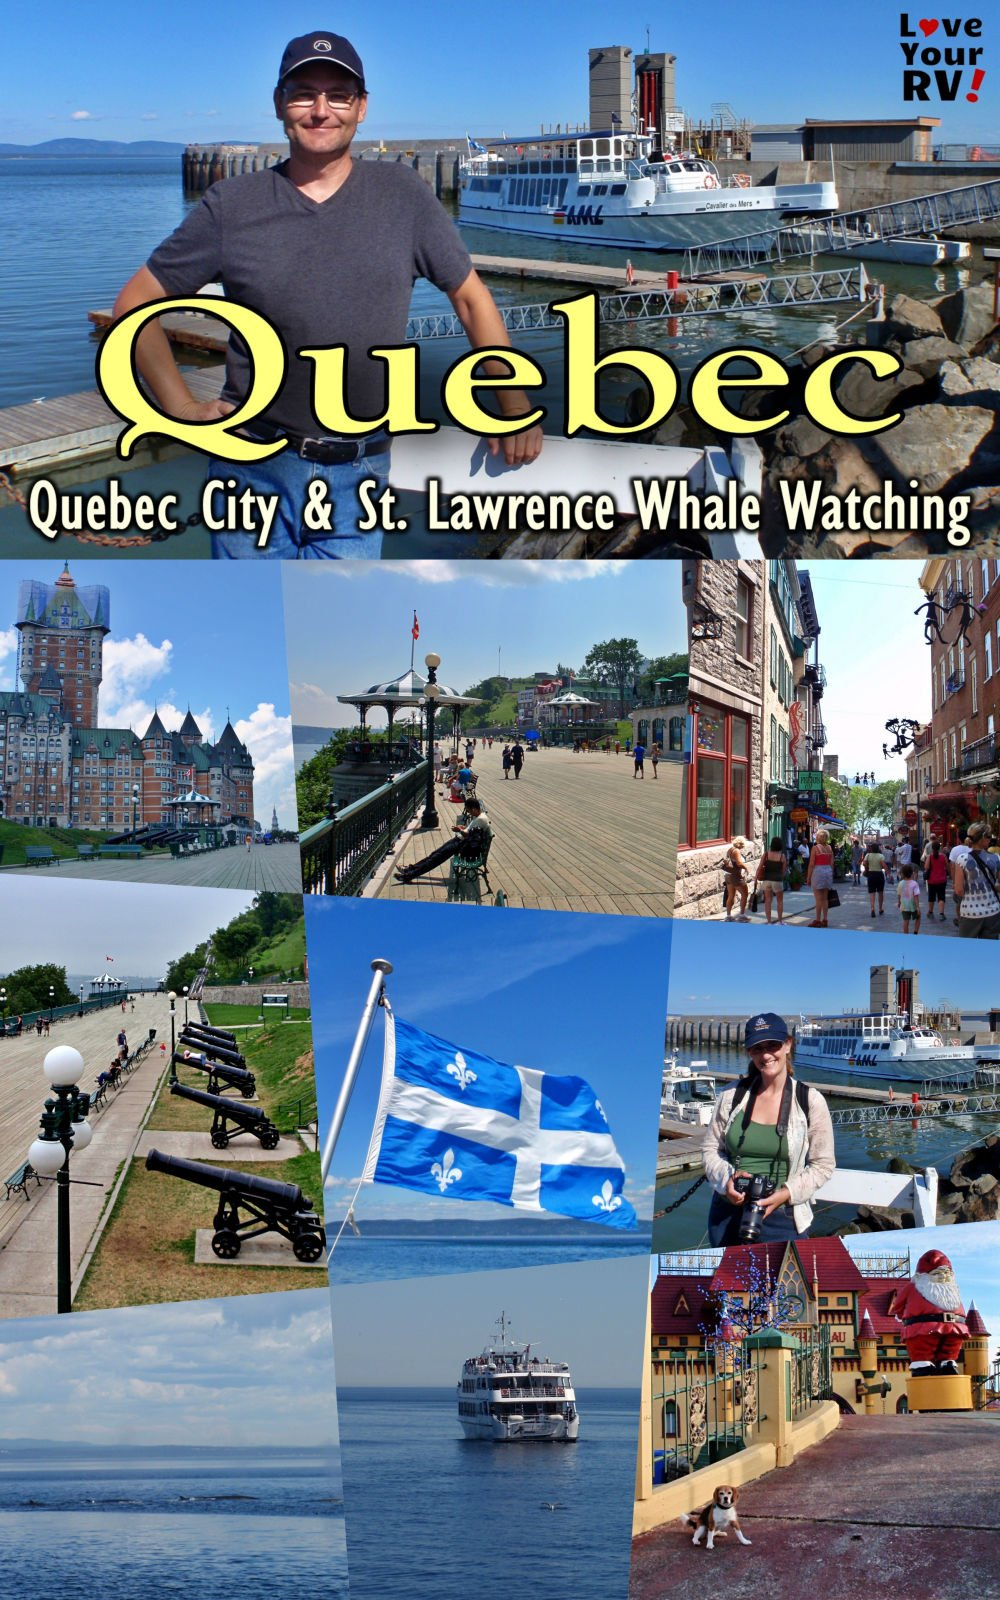 Quebec City and Whale Watching on the St Lawrence River Throwback Video July 2011